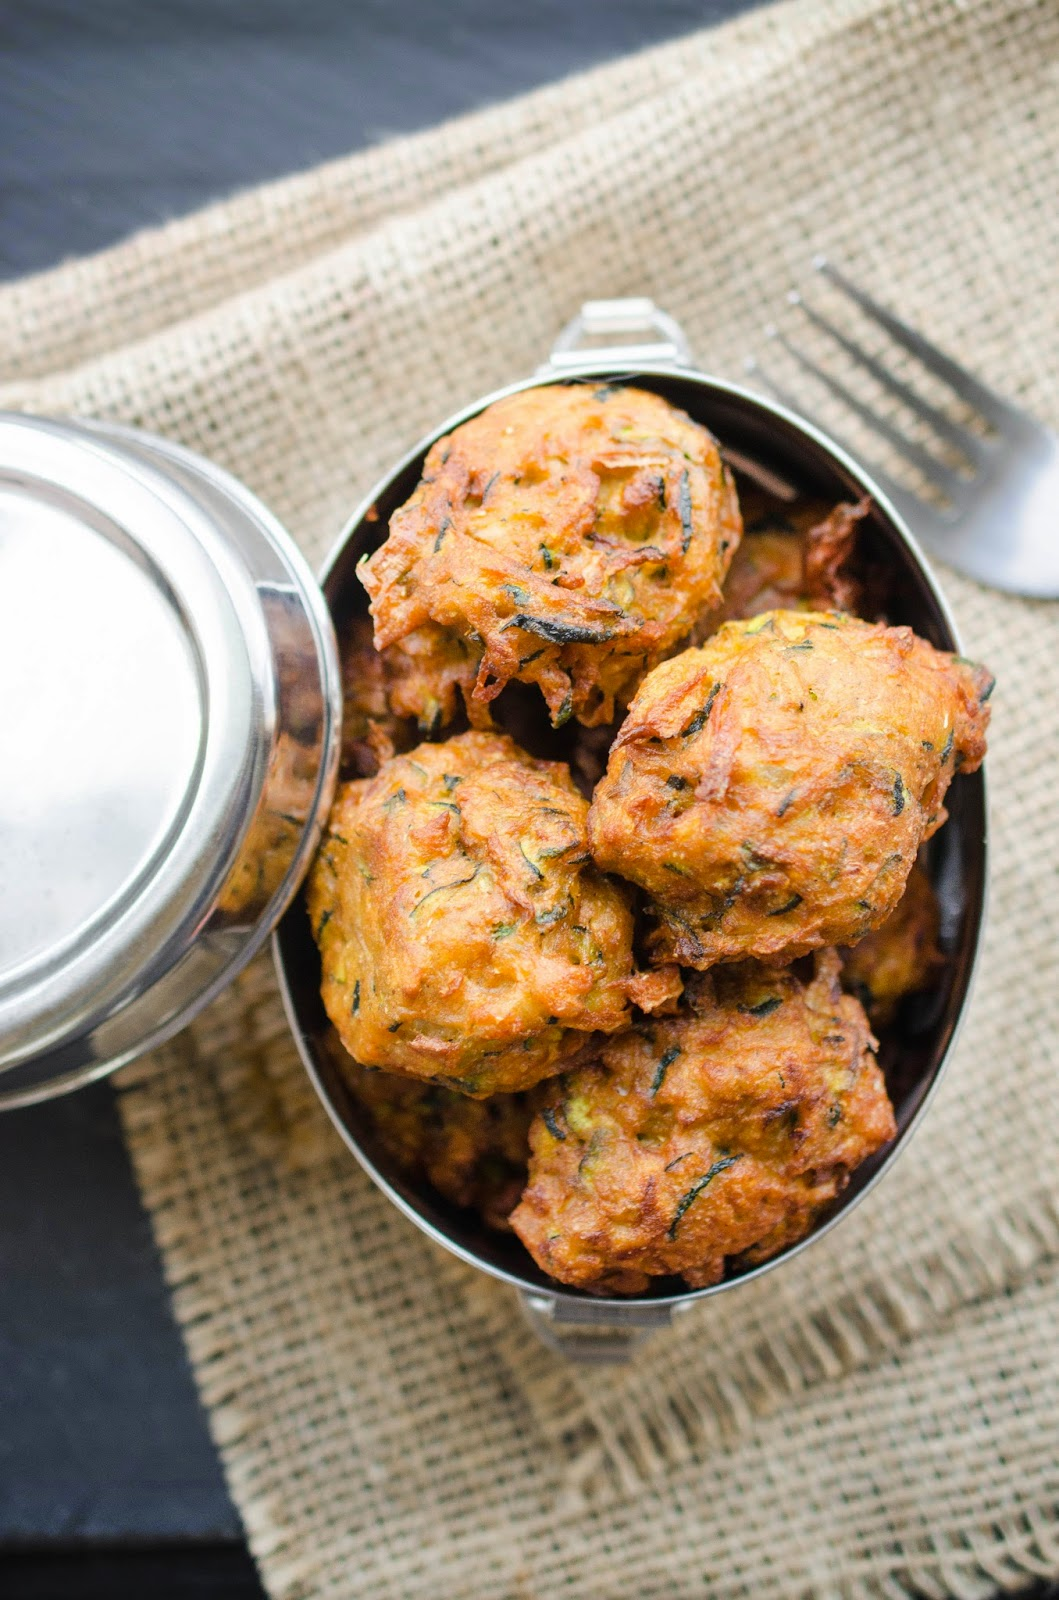 Zucchini and onion bhajis indian spiced zucchini and onion fritters its been a good season for zucchini then again when is it not a good season for zucchini this year i thought i was prepared for them forumfinder Gallery